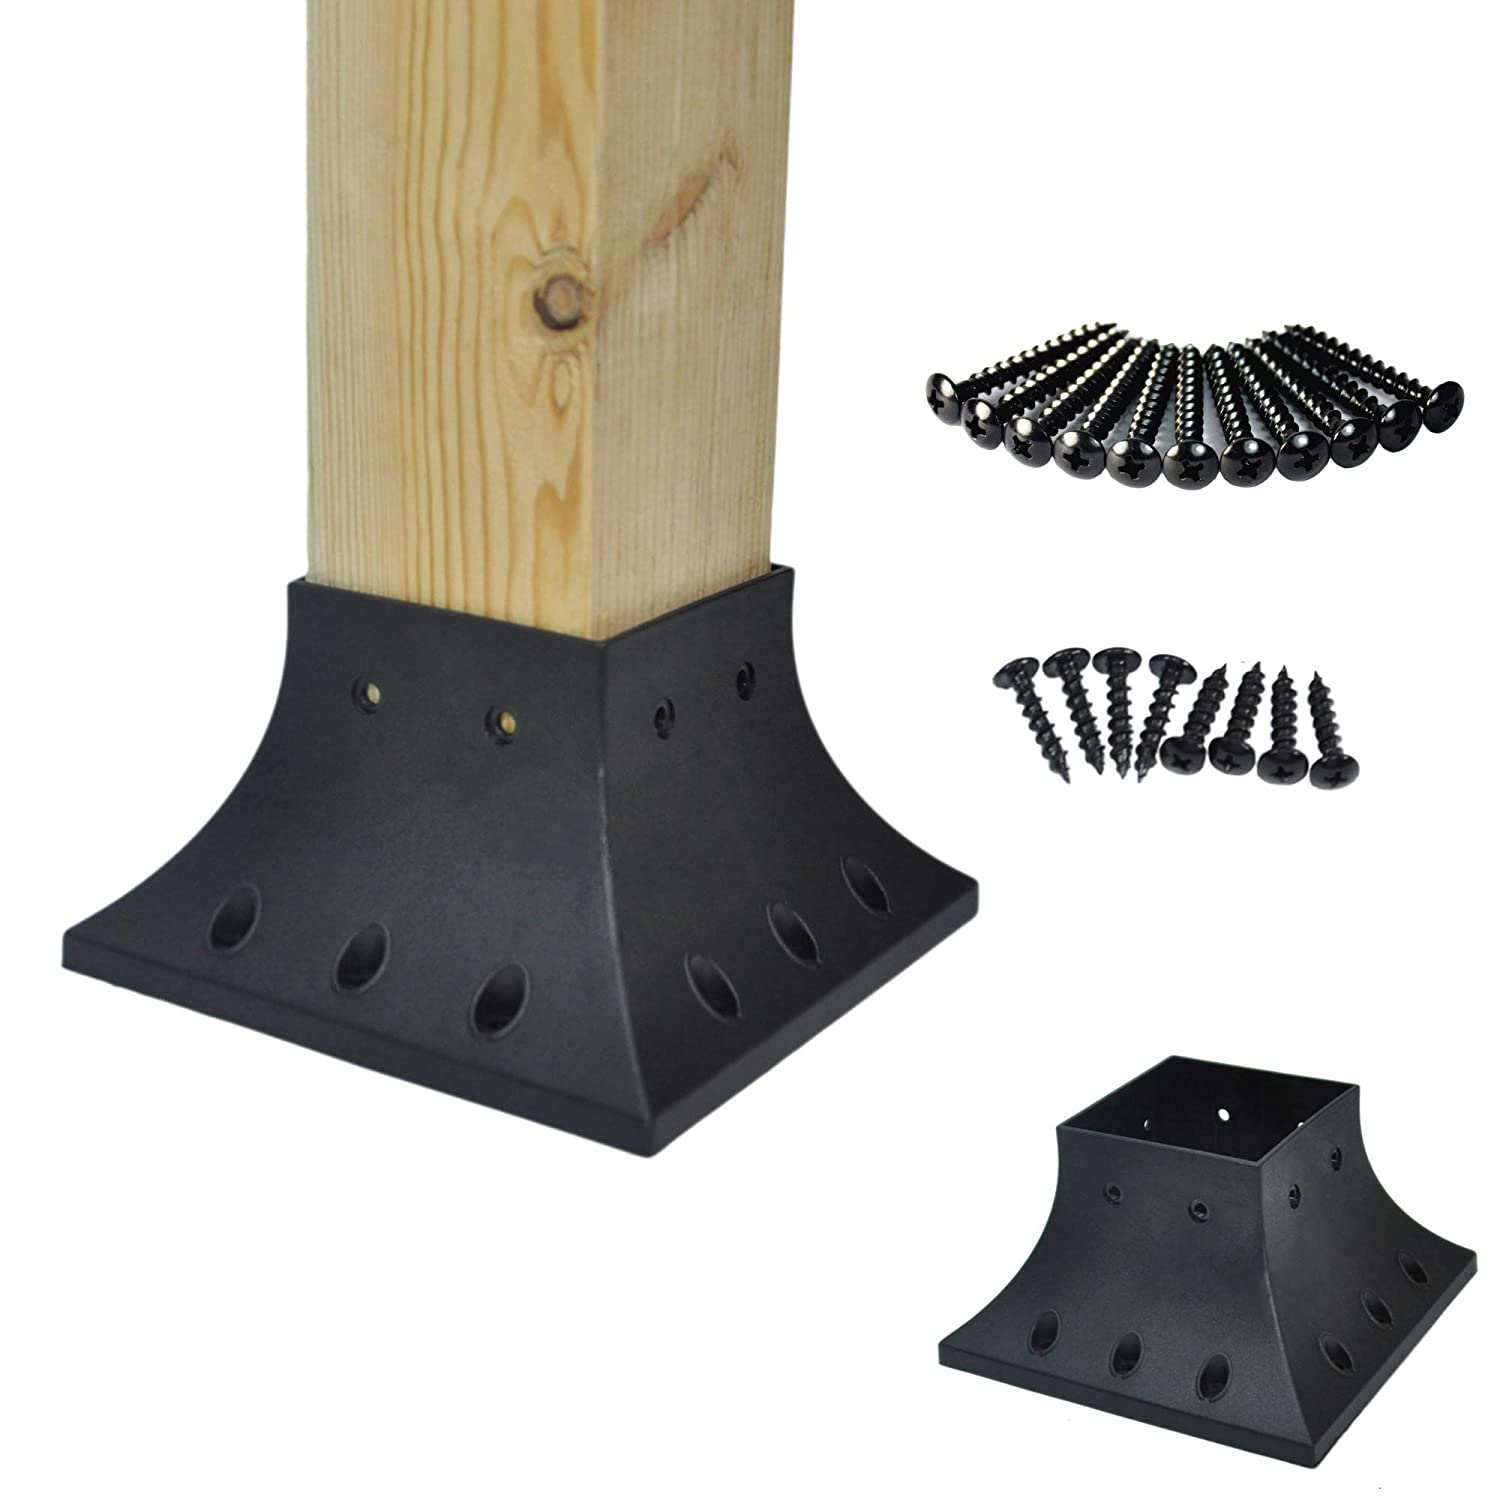 Myard PNP114040 4x4 (Actual 3.5x3.5) Inches Post Base Cover Skirt Flange with Screws for Deck Porch Handrail Railing Support Trim Anchor (Qty 1, Black)